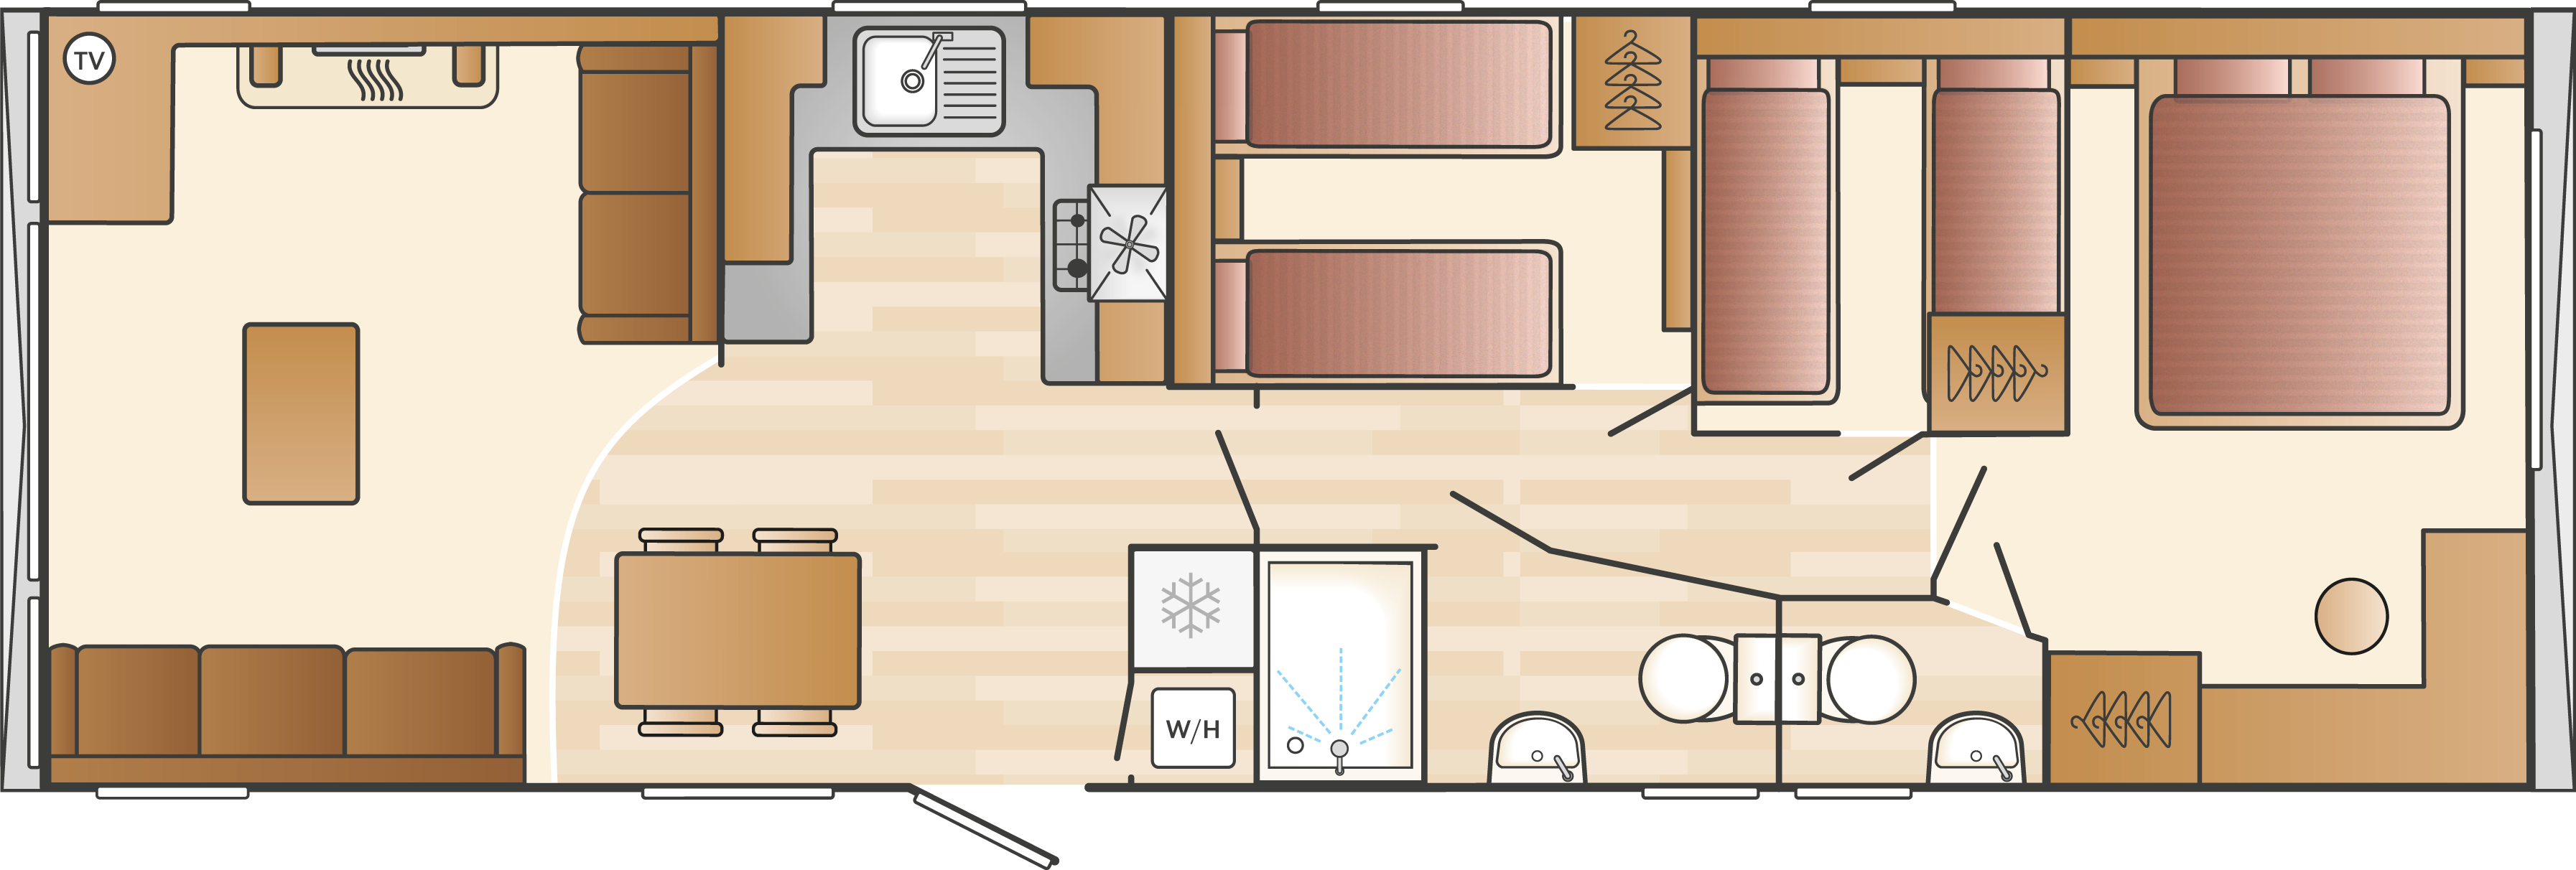 4 Bedroom Caravan Layout